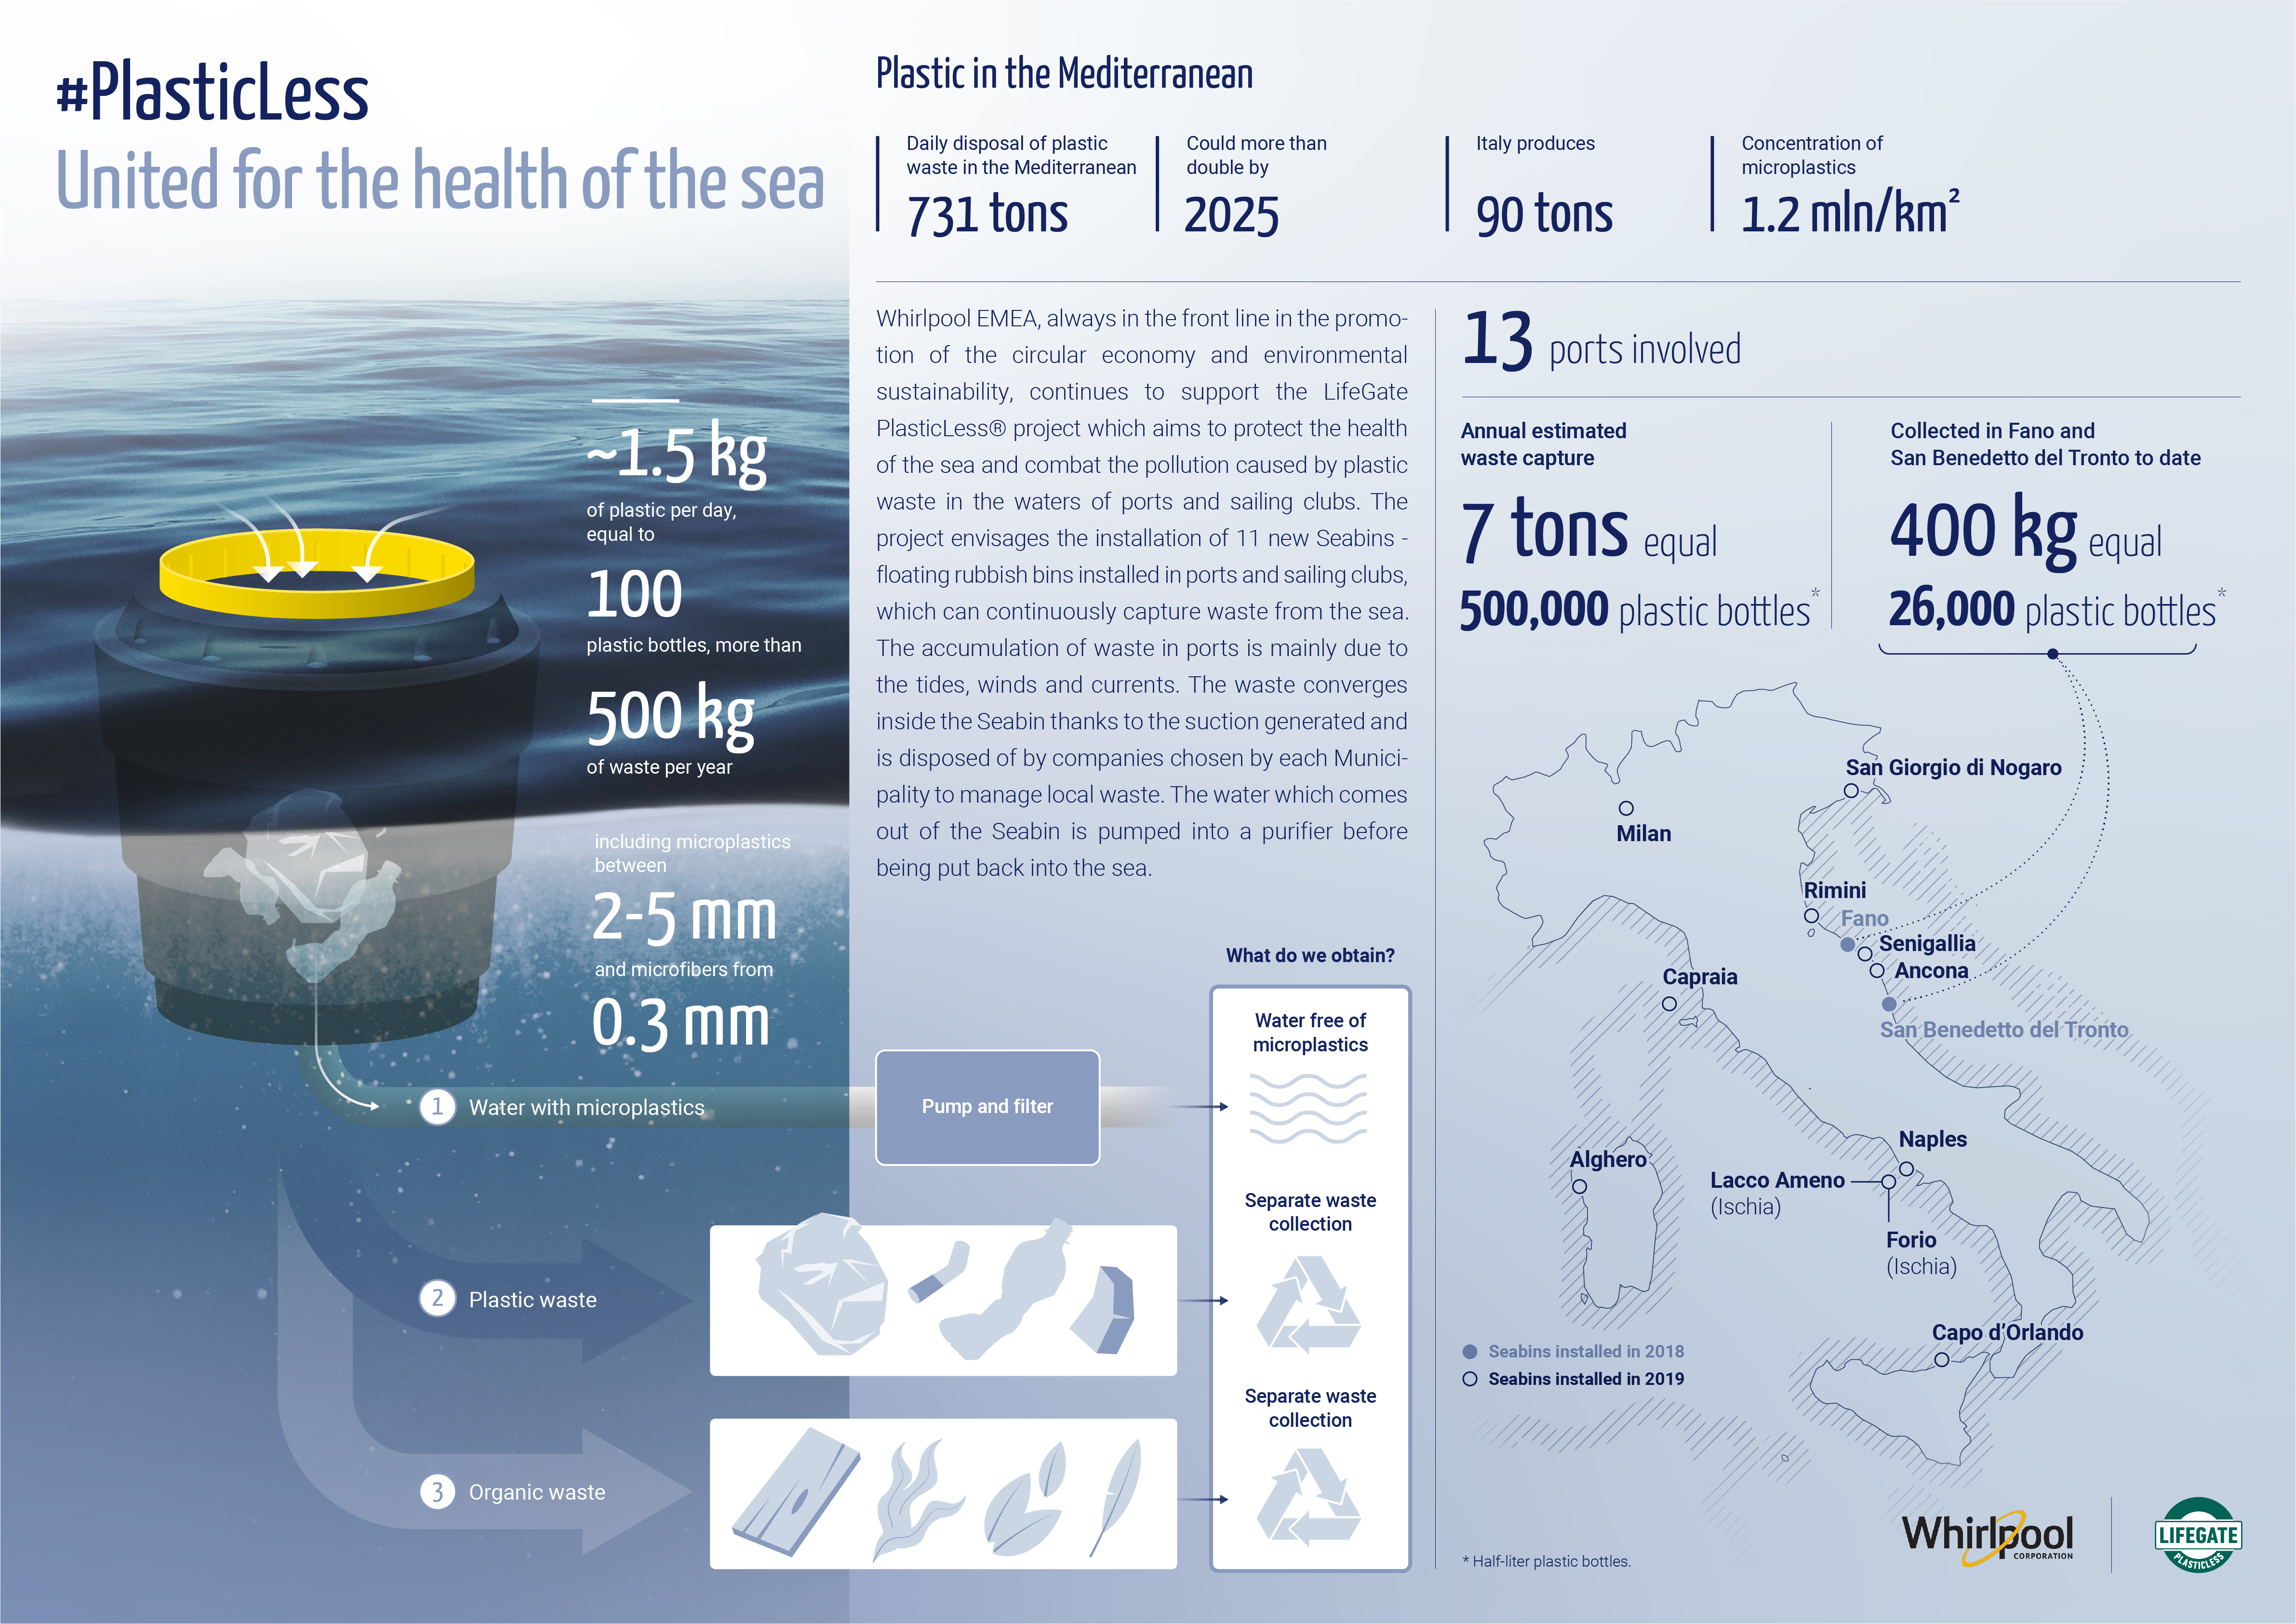 Whirlpool EMEA joins Lifegate in the fight against plastics pollution in Italy's seas 2